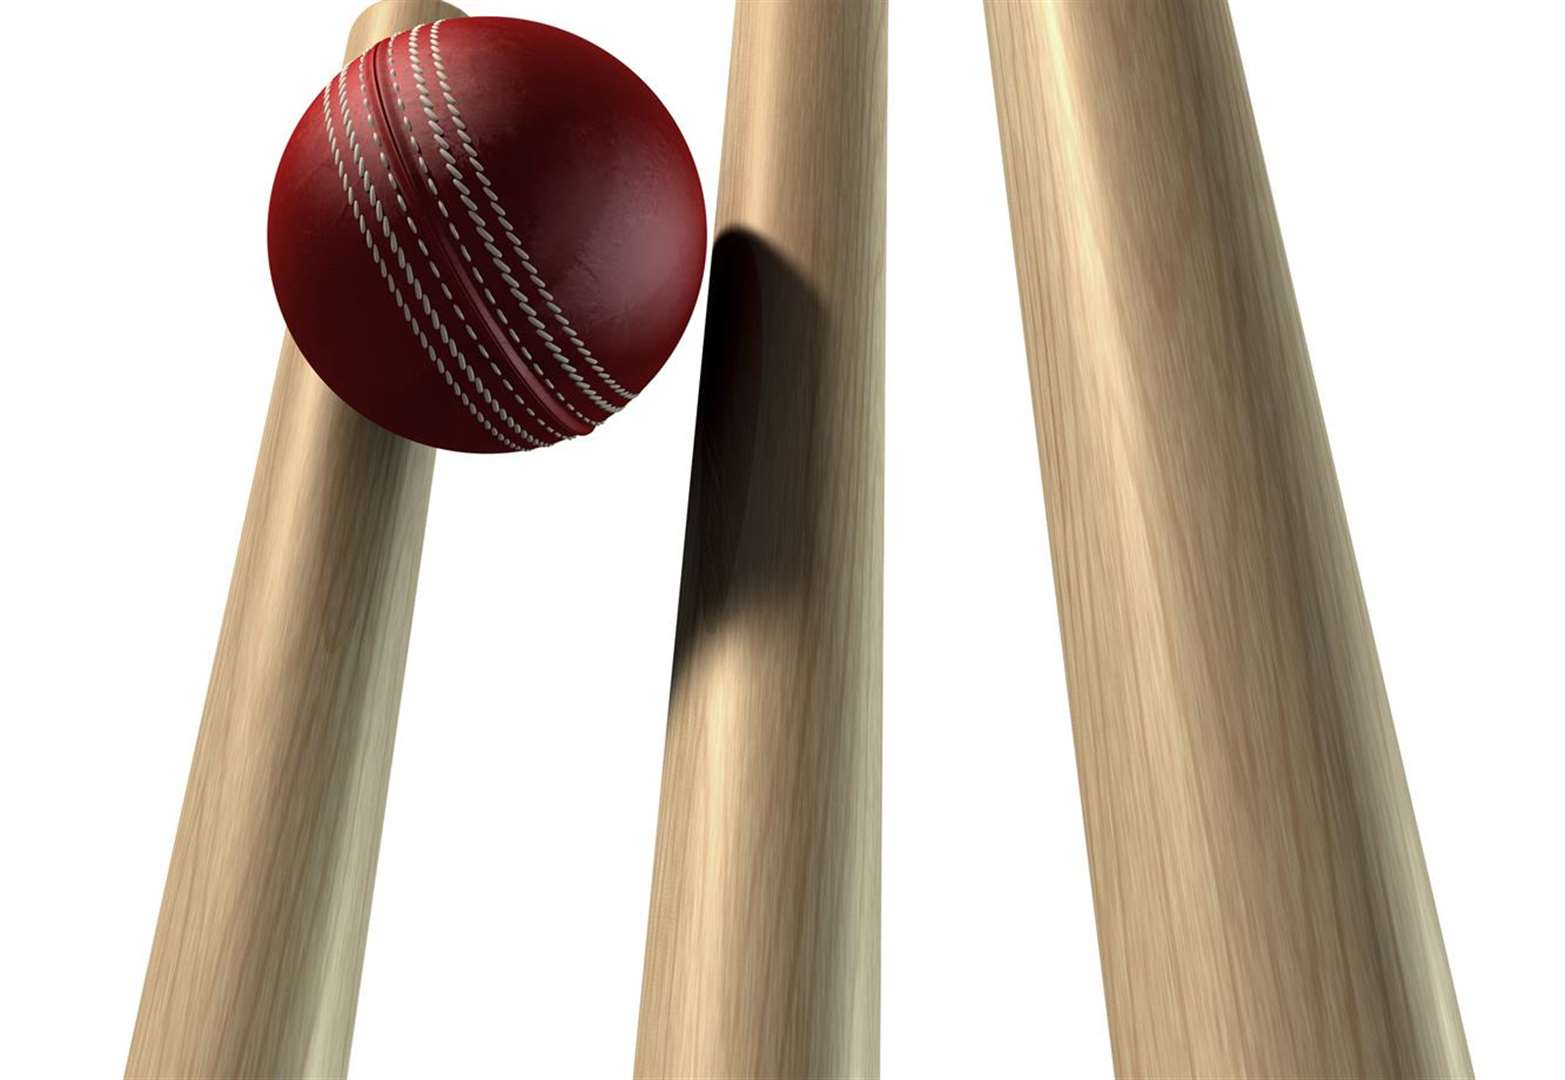 CRICKET: Wimblington U13 hit record score